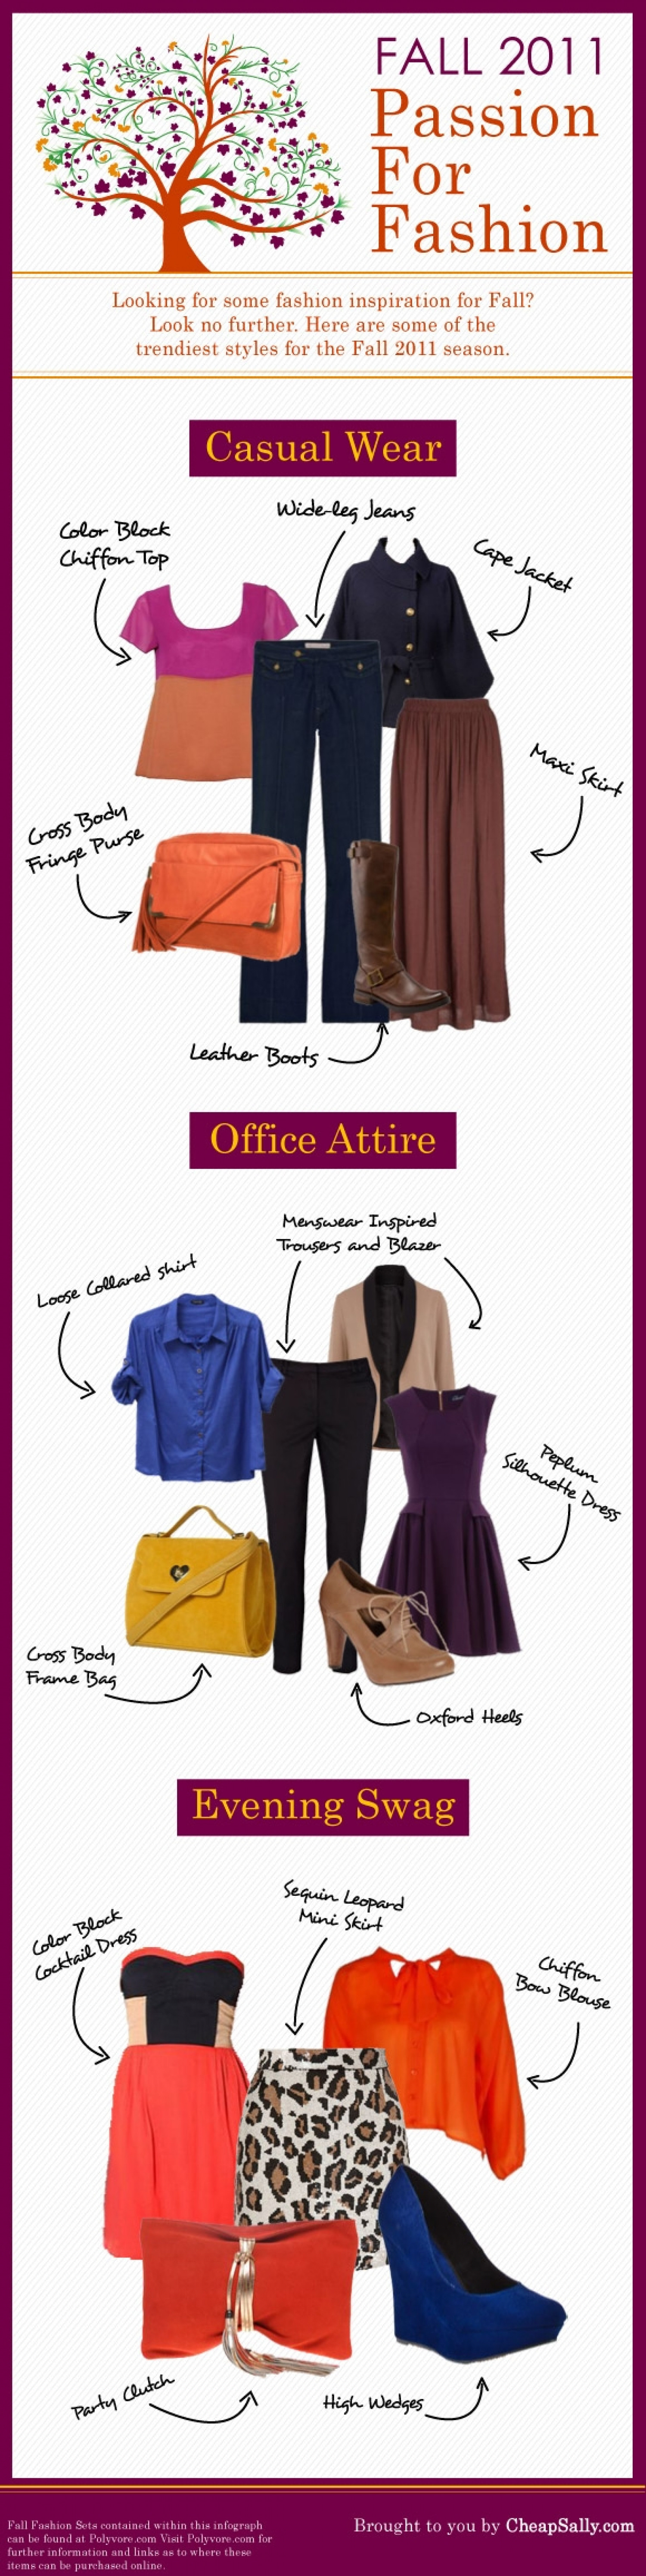 Passion for Fashion Infographic